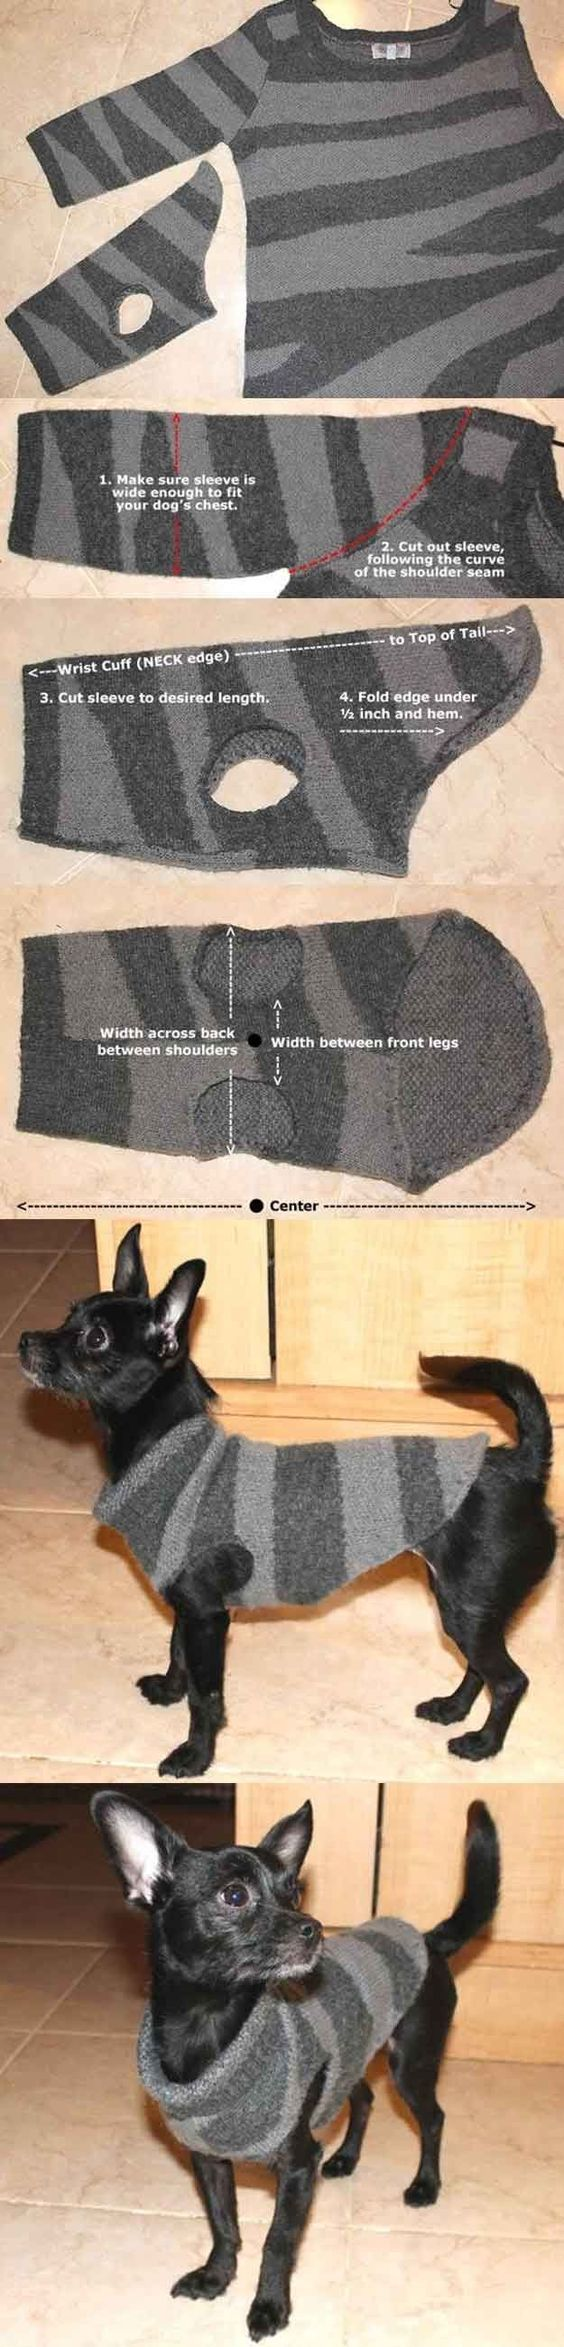 Upcycled Dog Sweater - 12 DIY Dog Clothes and Coats   How To Make Cute Outfits For Your Furry Pet by DIY Ready at http://diyready.com/diy-dog-clothes-and-coats/